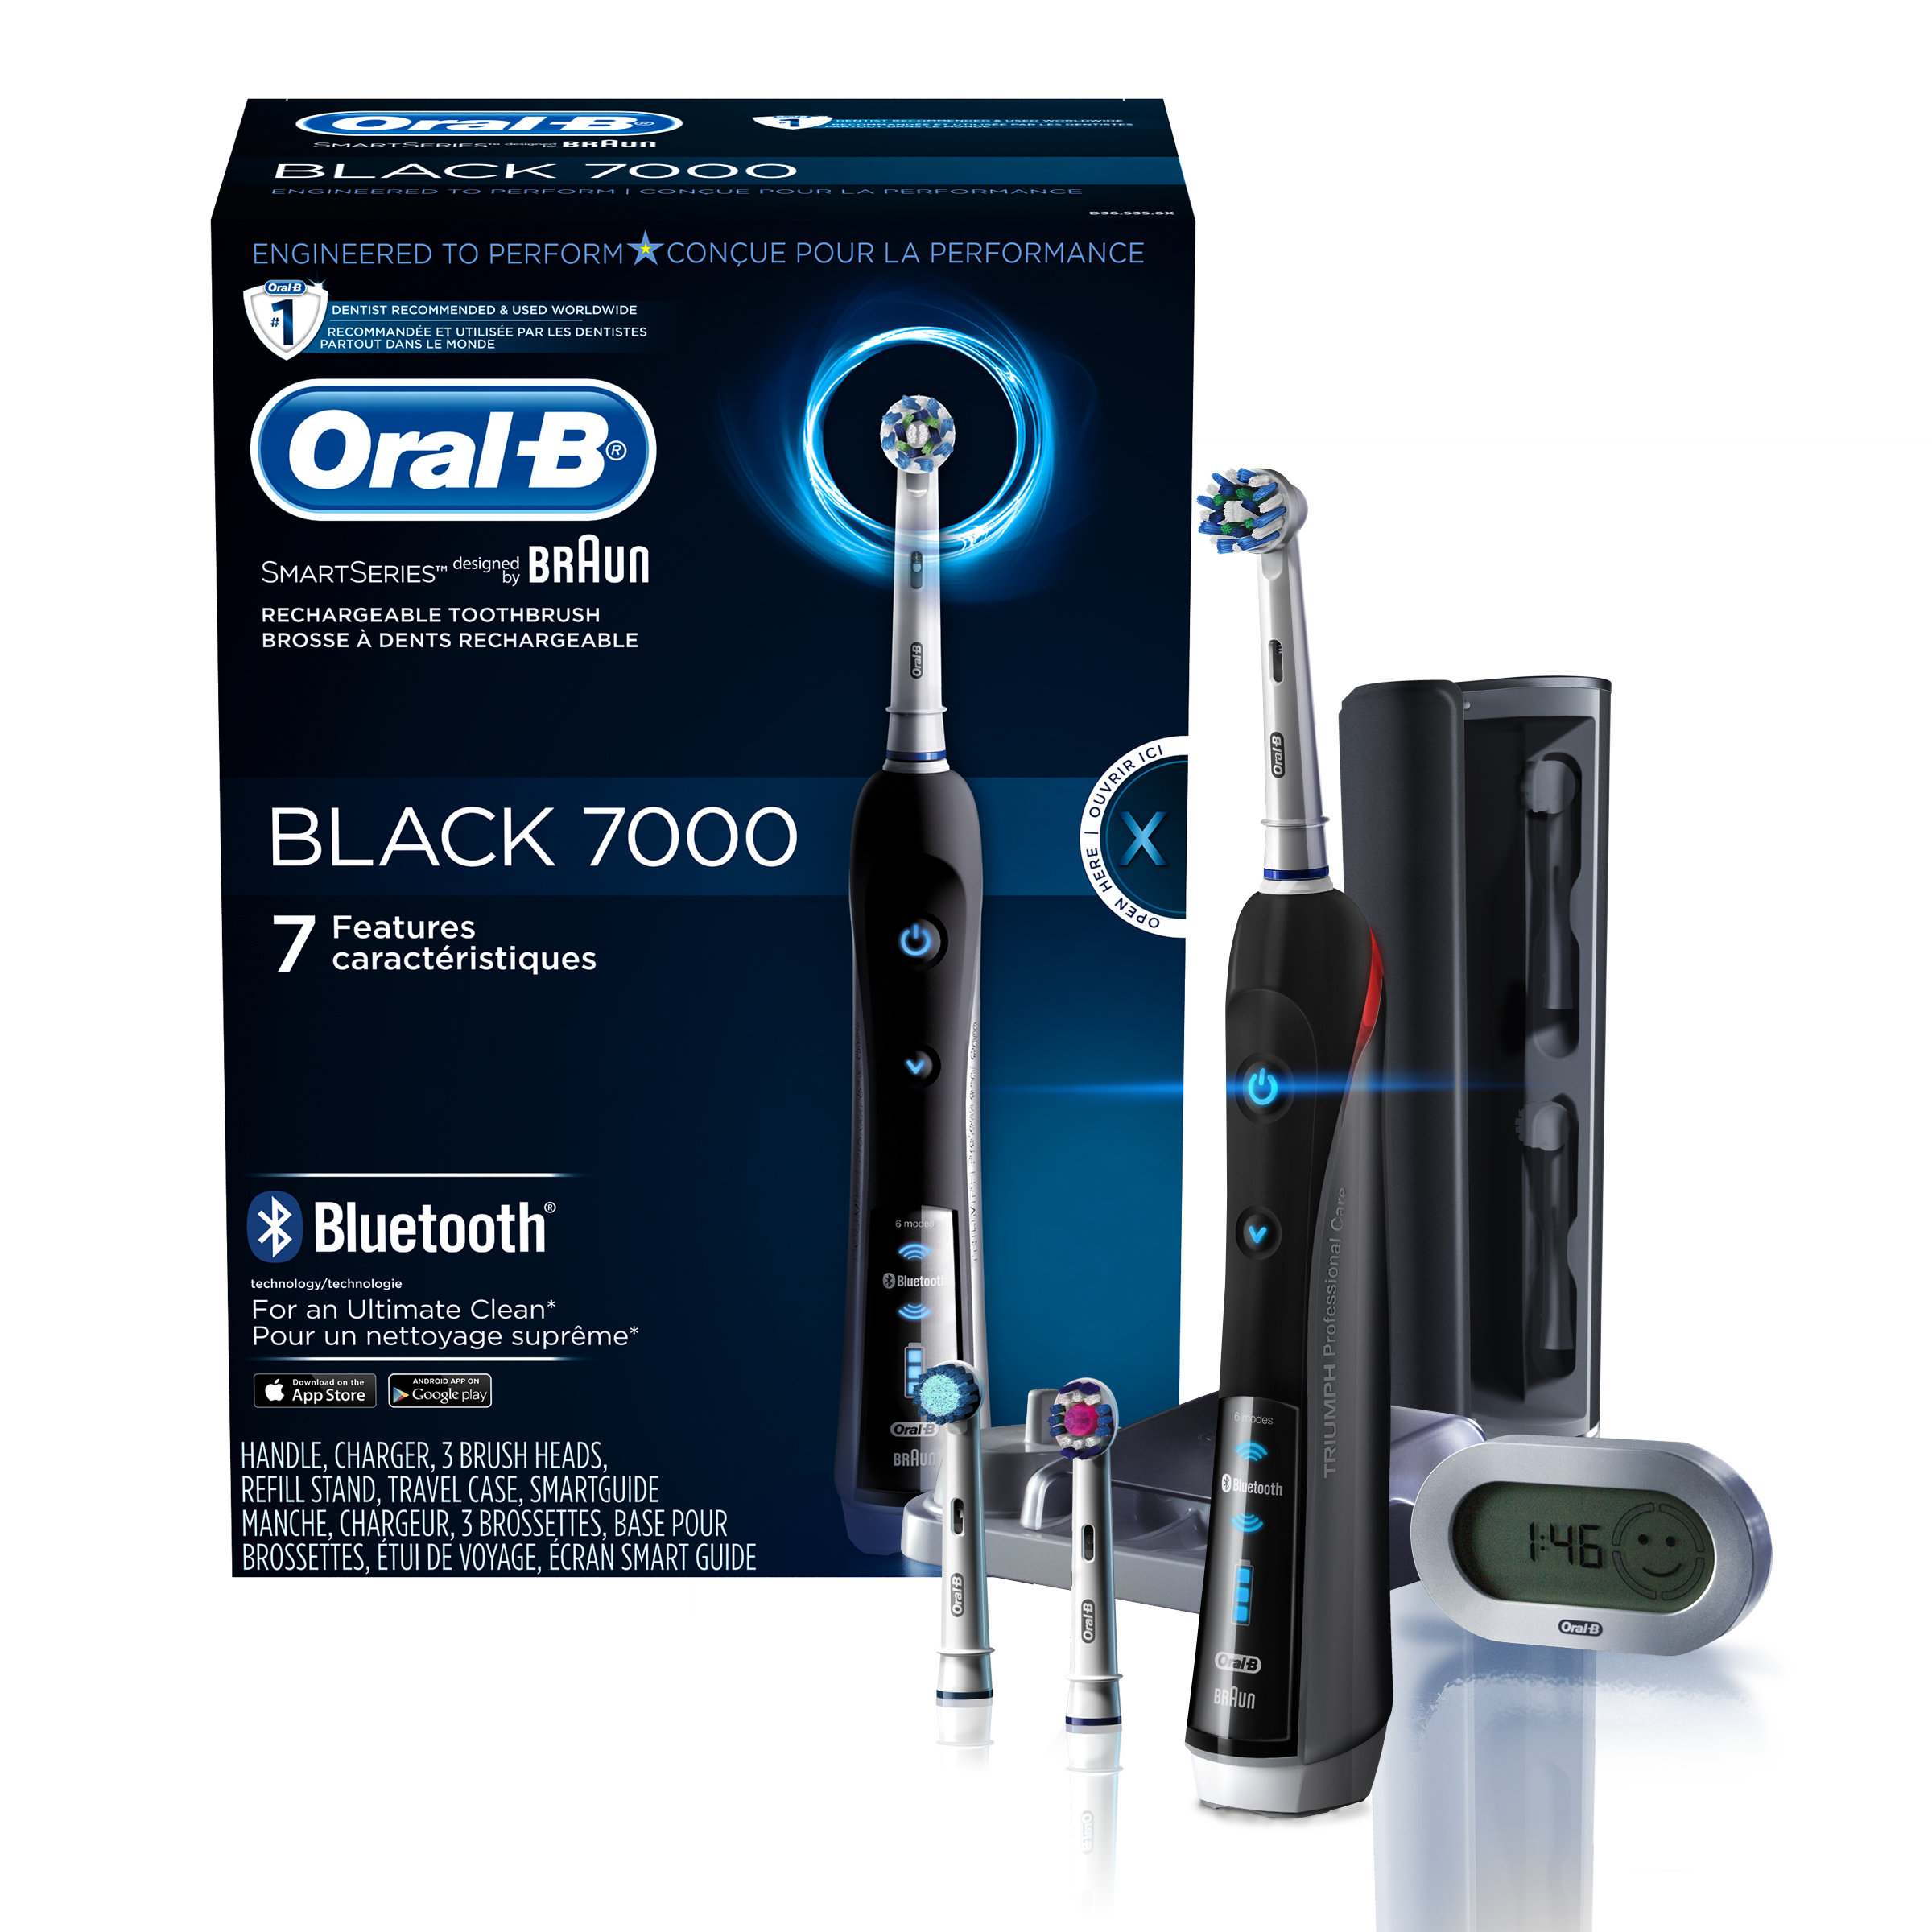 Oral-B 7000 SmartSeries Electric Toothbrush, 3 Brush Heads, Powered by Braun, Black